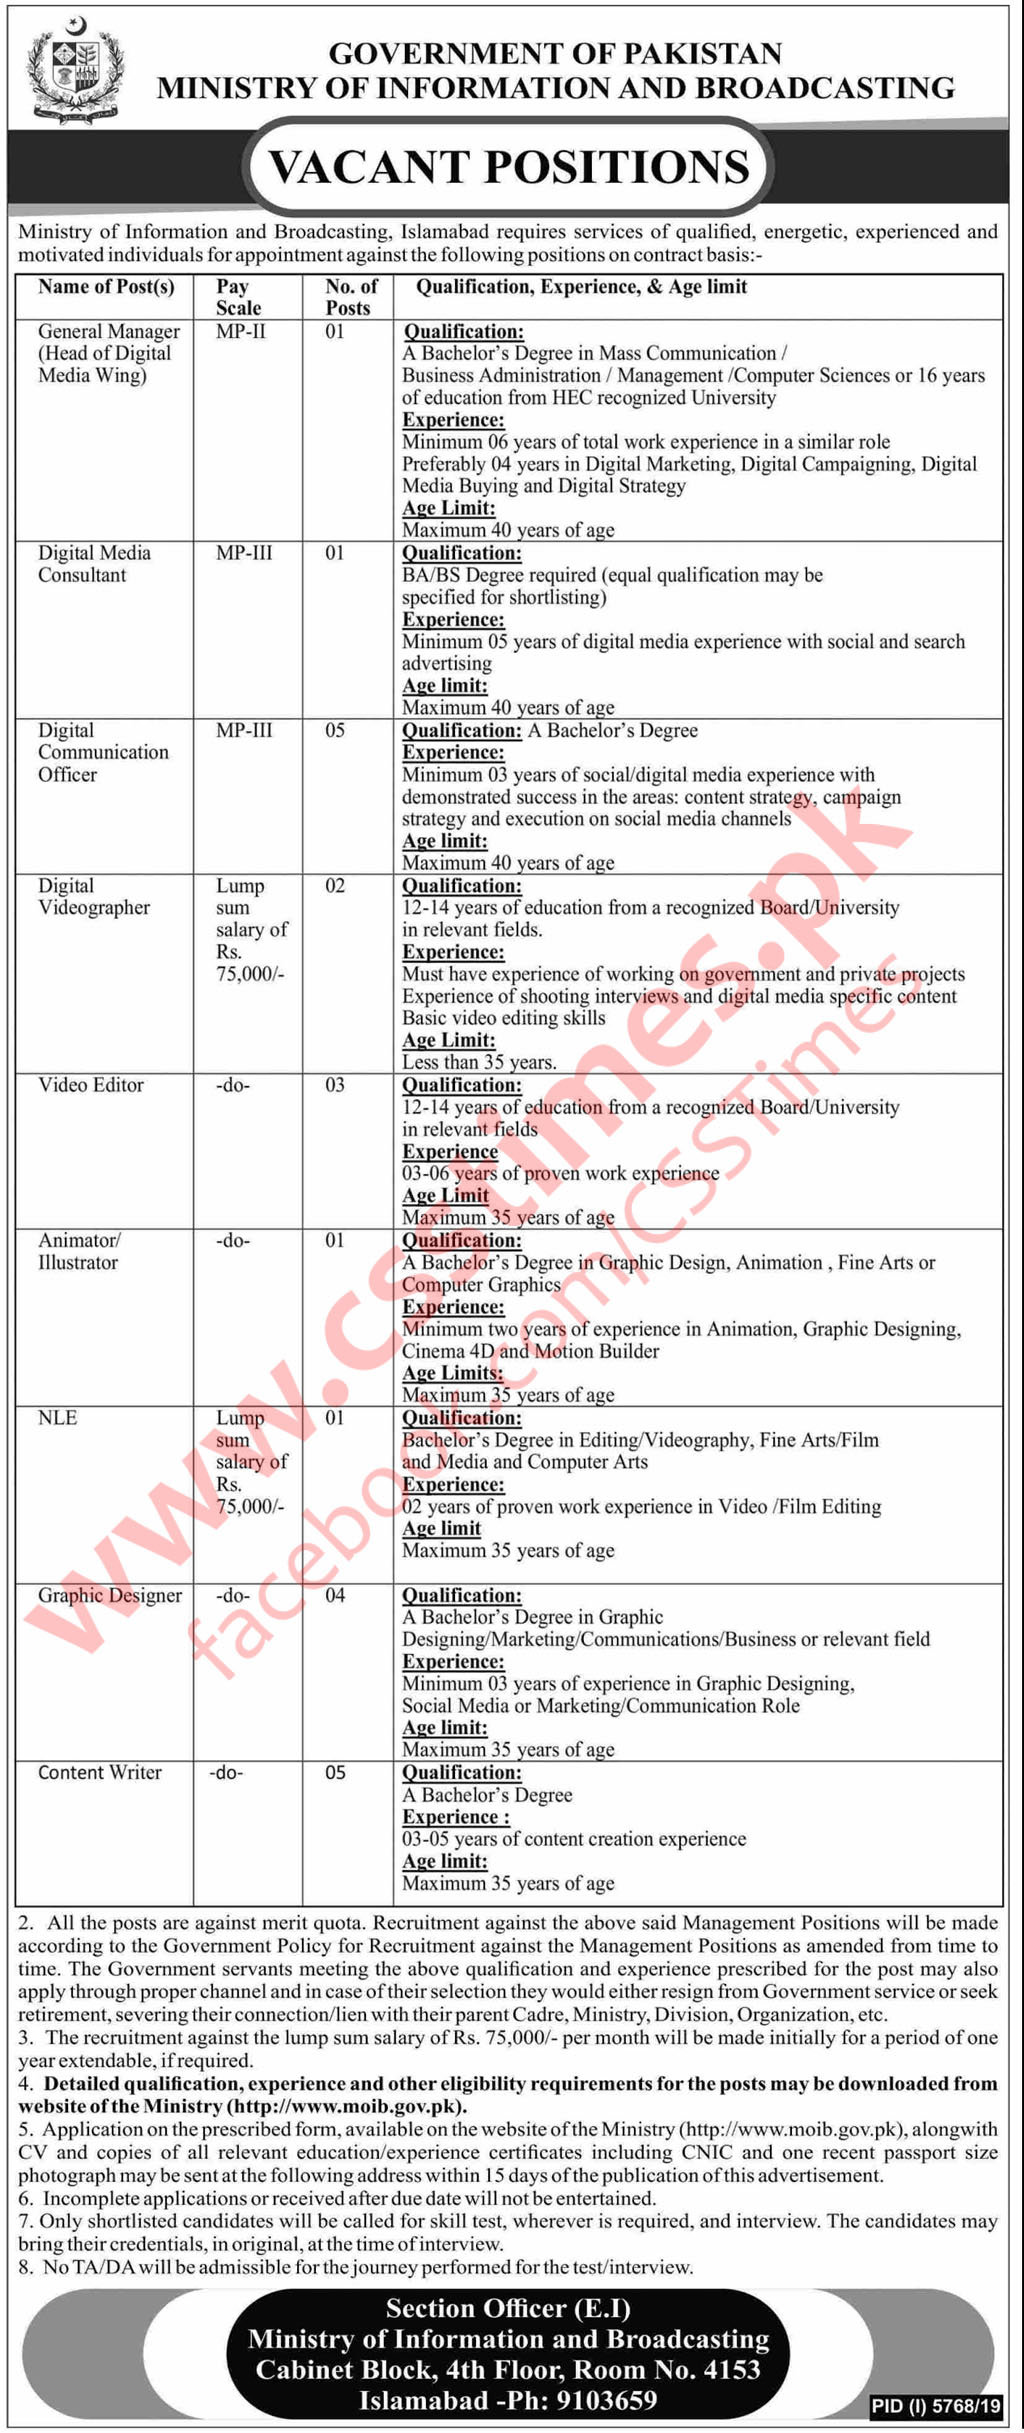 Vacant Positions in Ministry of Information and Broadcasting